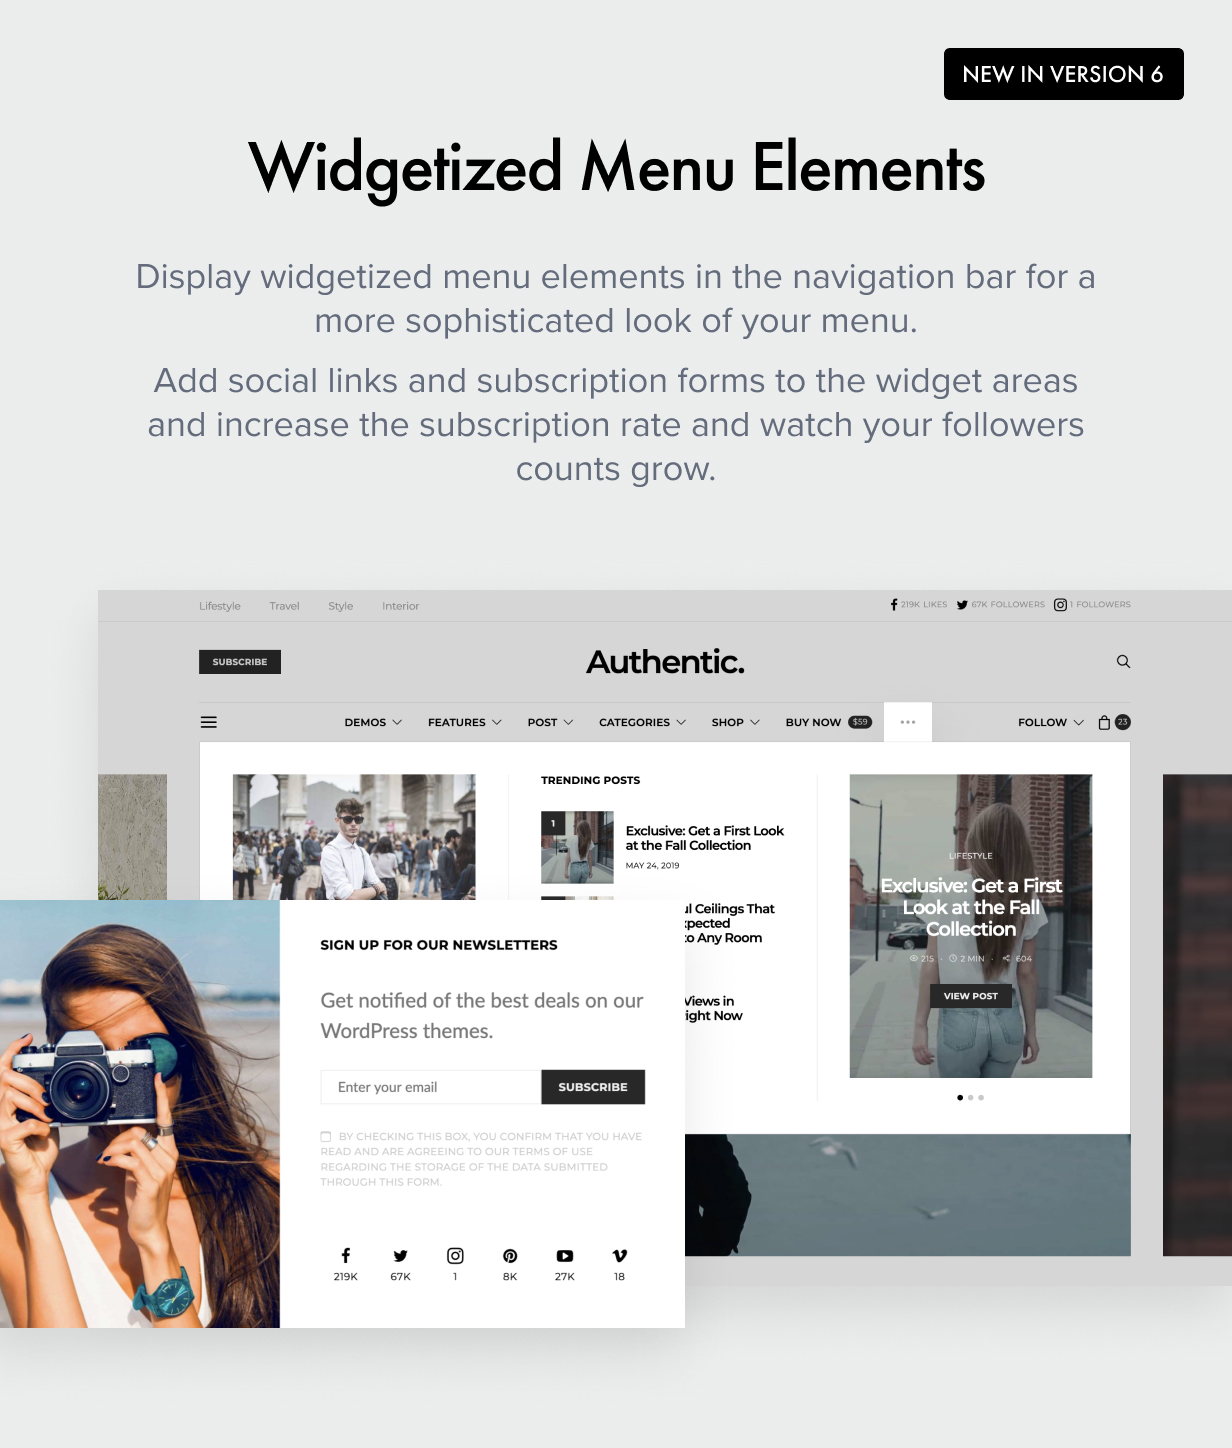 widgetized menu - Authentic - Lifestyle Blog & Magazine WordPress Theme